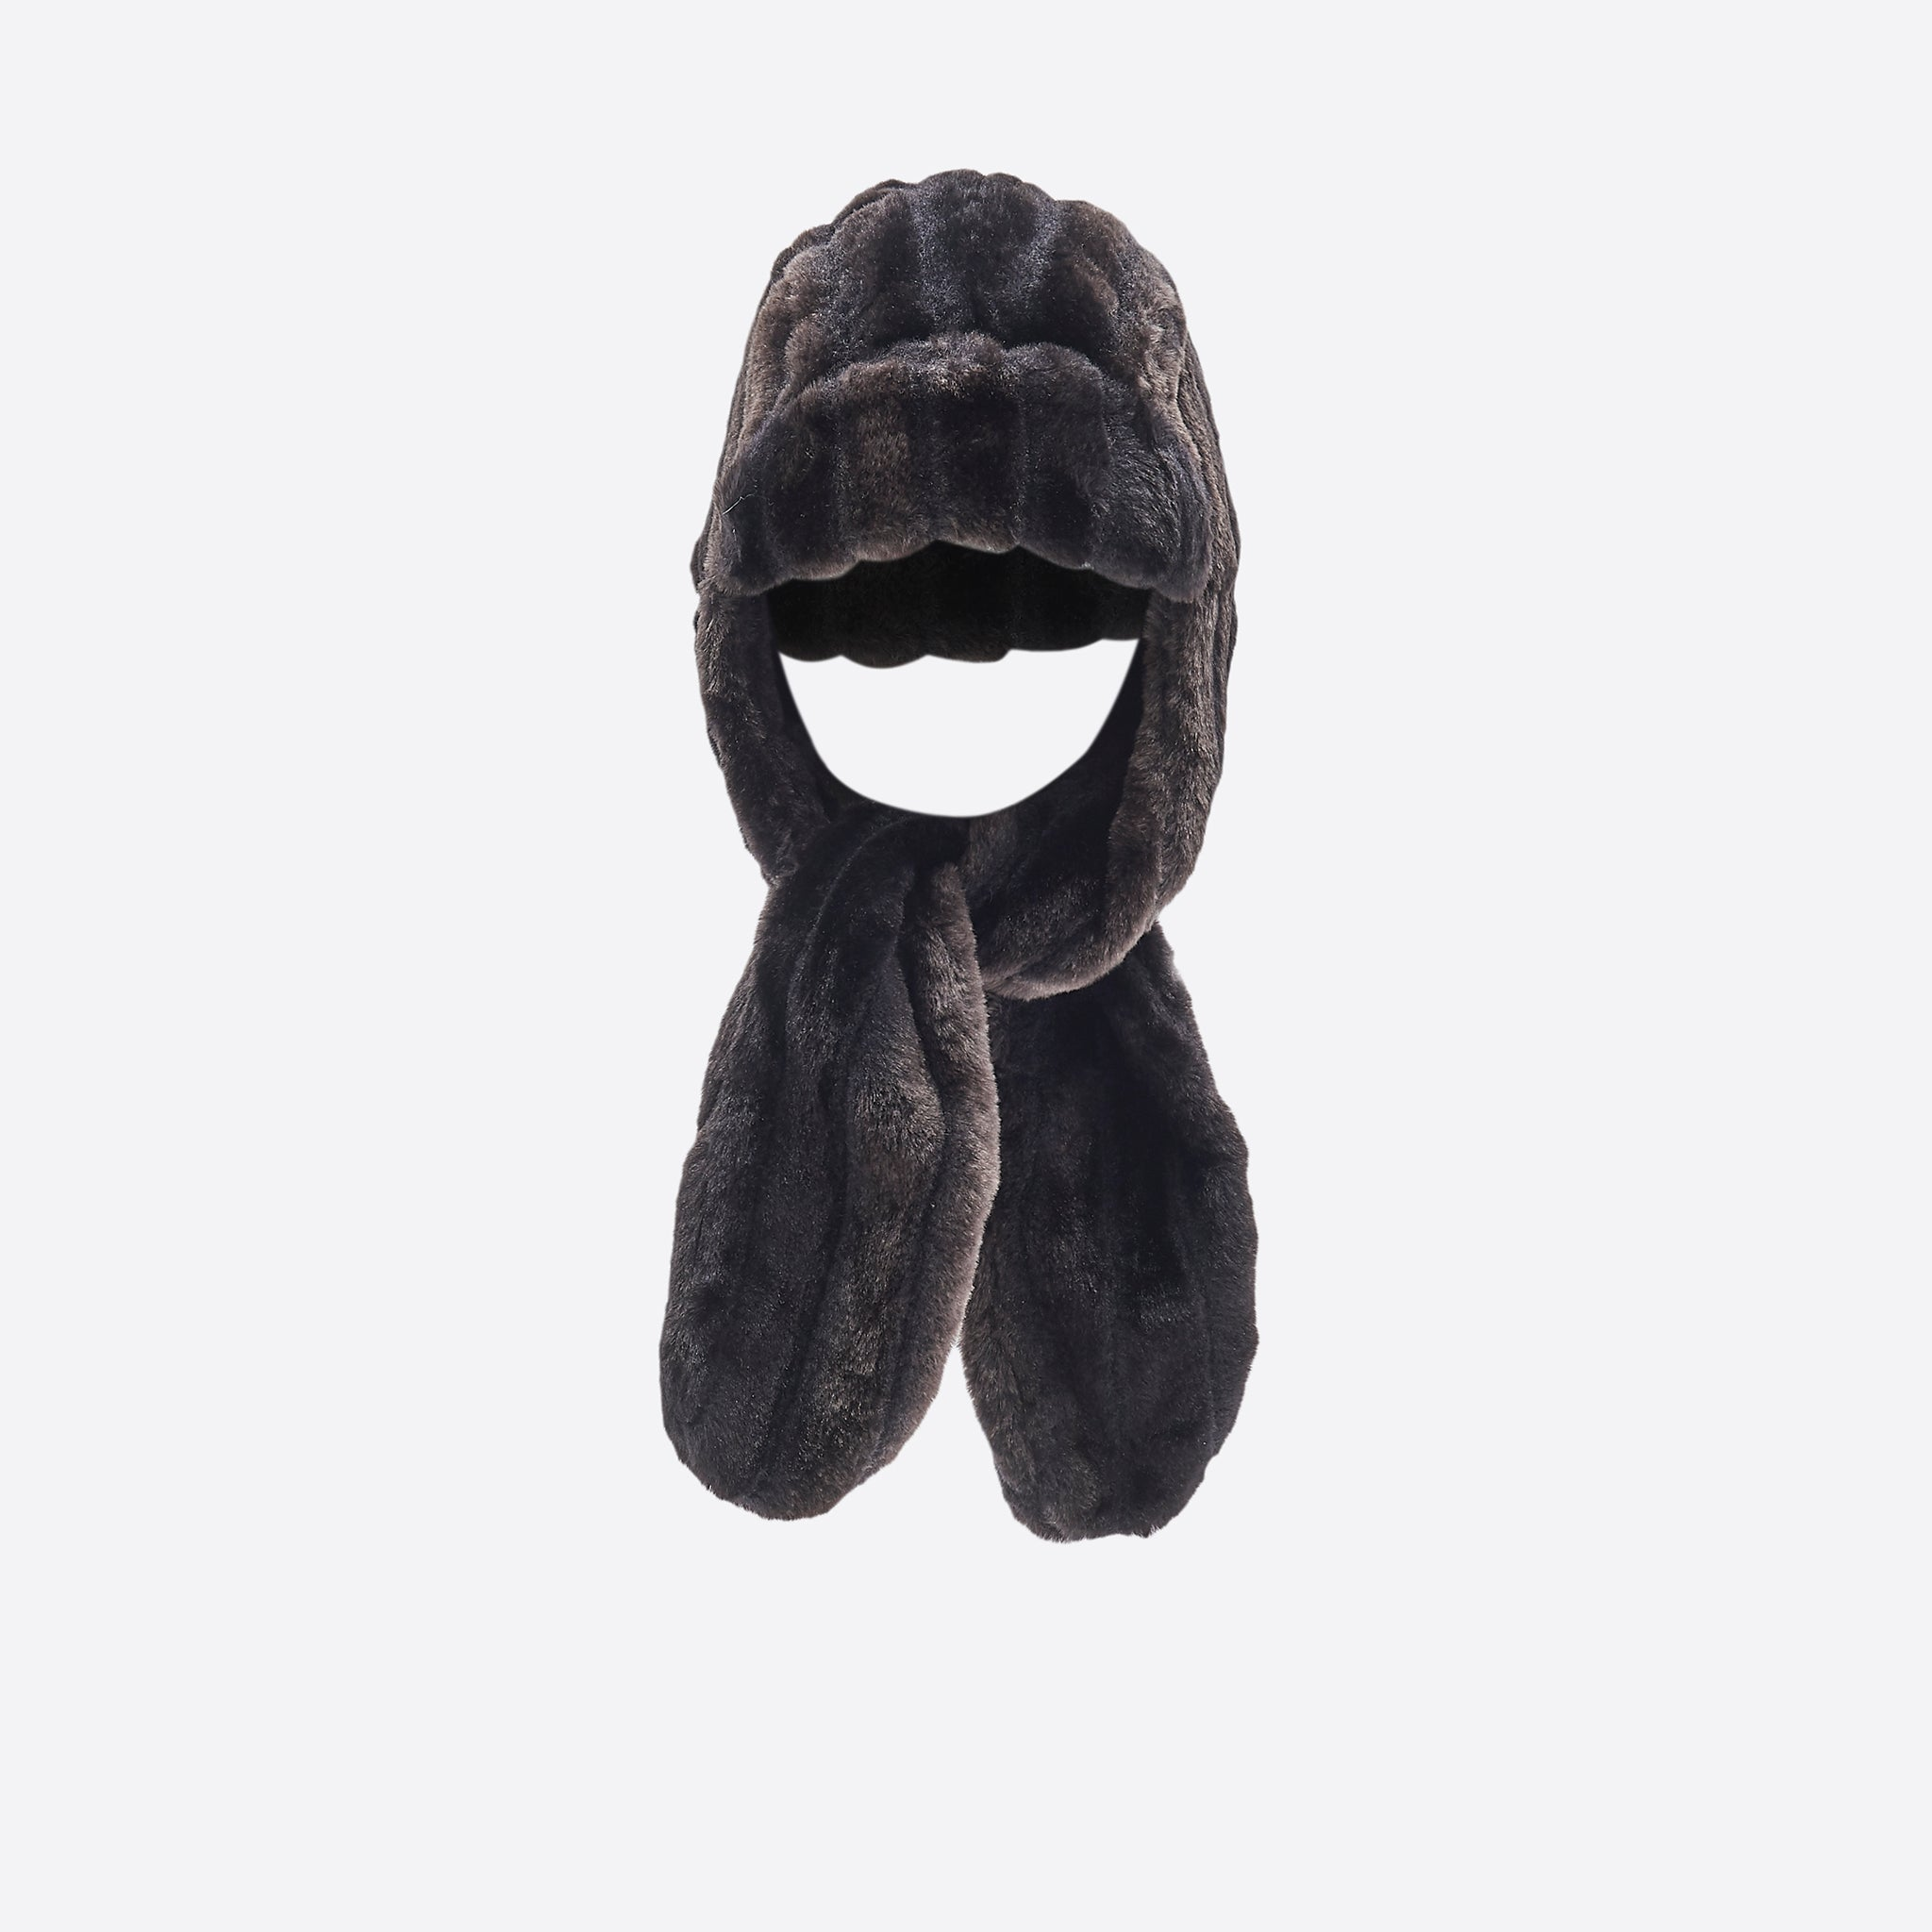 Neul Shapka Faux Fur Hat in Black